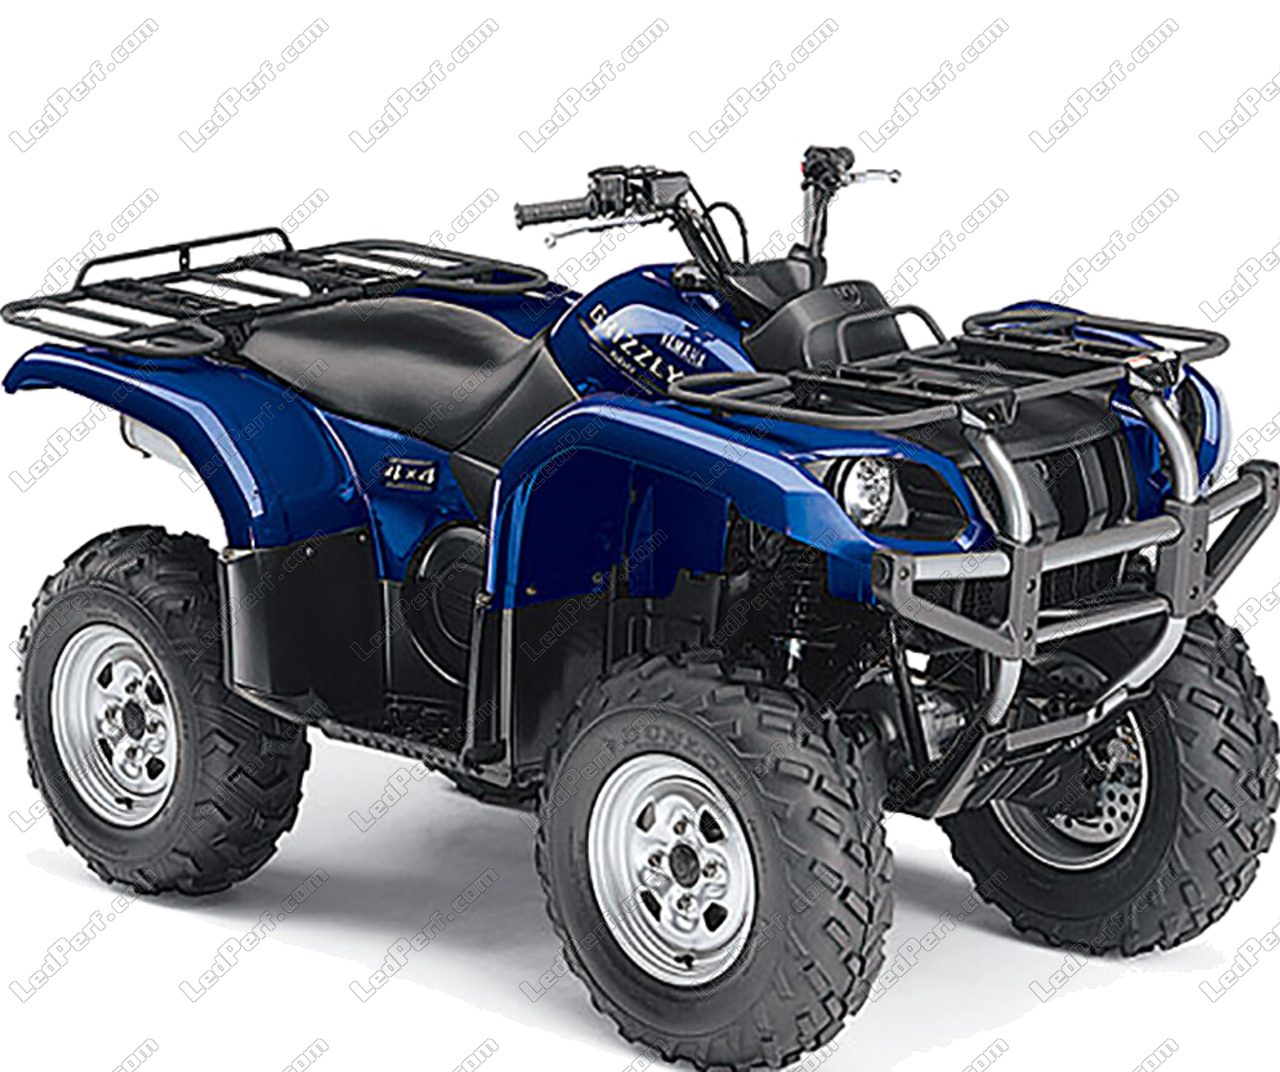 additional led headlights for atv yamaha yfm 660 grizzly. Black Bedroom Furniture Sets. Home Design Ideas